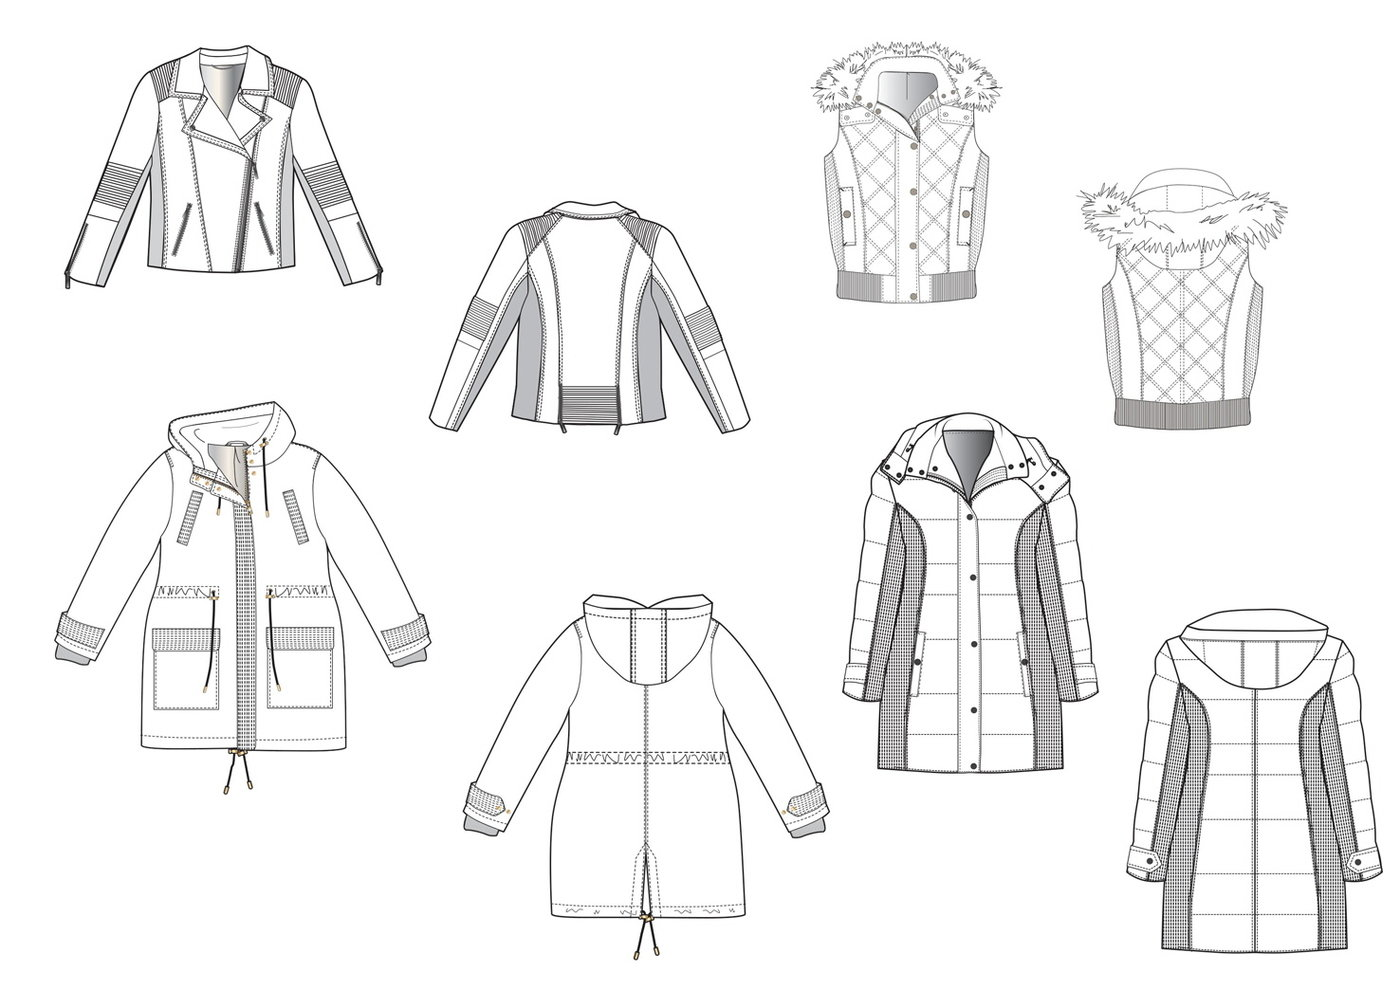 Garment Sketches Knitwear & Outerwear by Manda Epton at